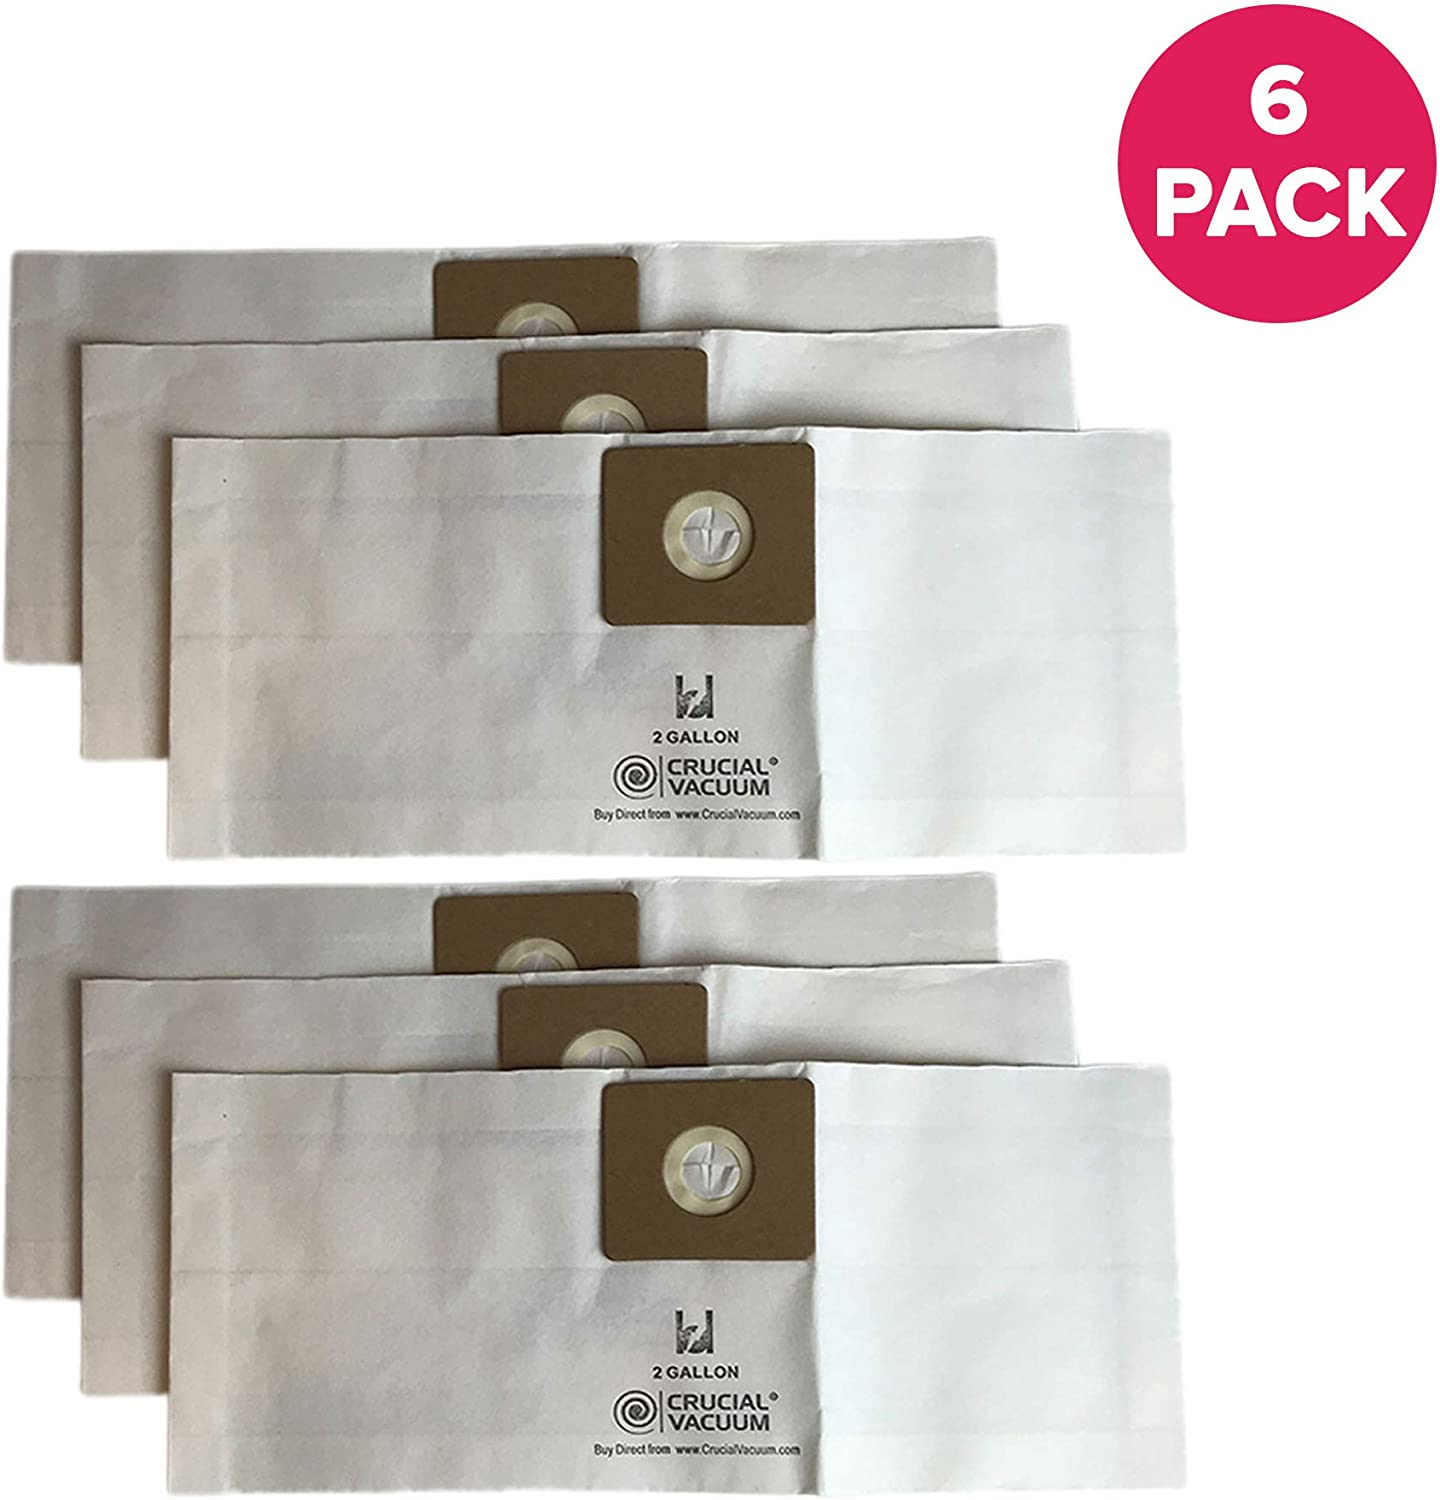 Long-Lasting 2-Gallon for Wet Bulk Packs Bag Measures 7 X 6.6 X 0.9 Inches 3 Pack Compatible with Shop Vac Type B Models Dry Vacs Crucial Vacuum Replacement Vac Bags Part # 9066800